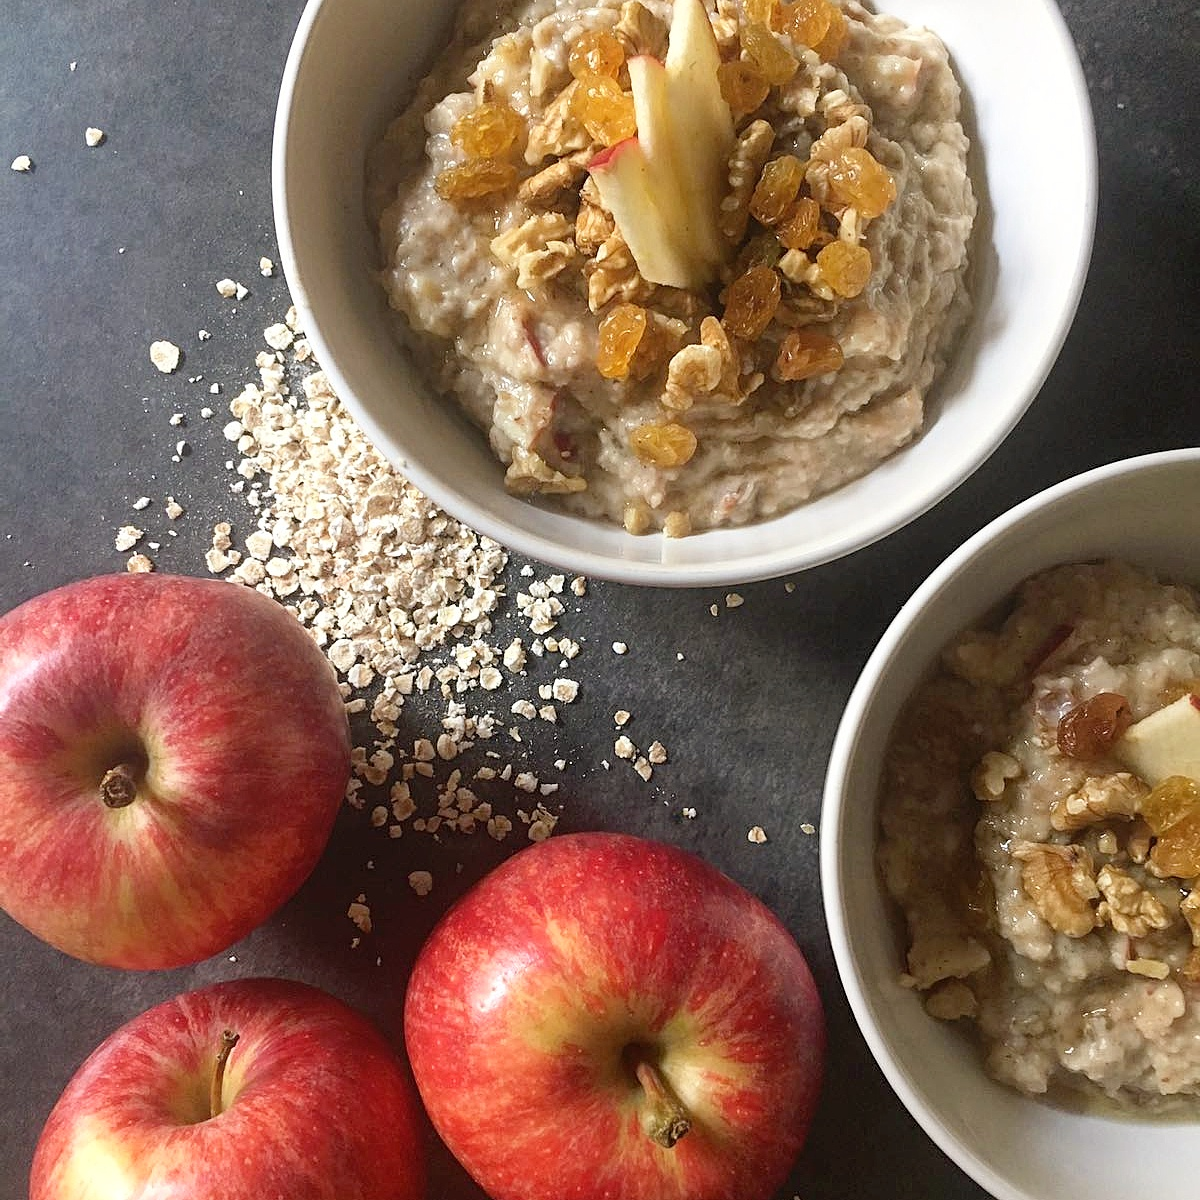 Classic apple and cinnamon breakfast porridge